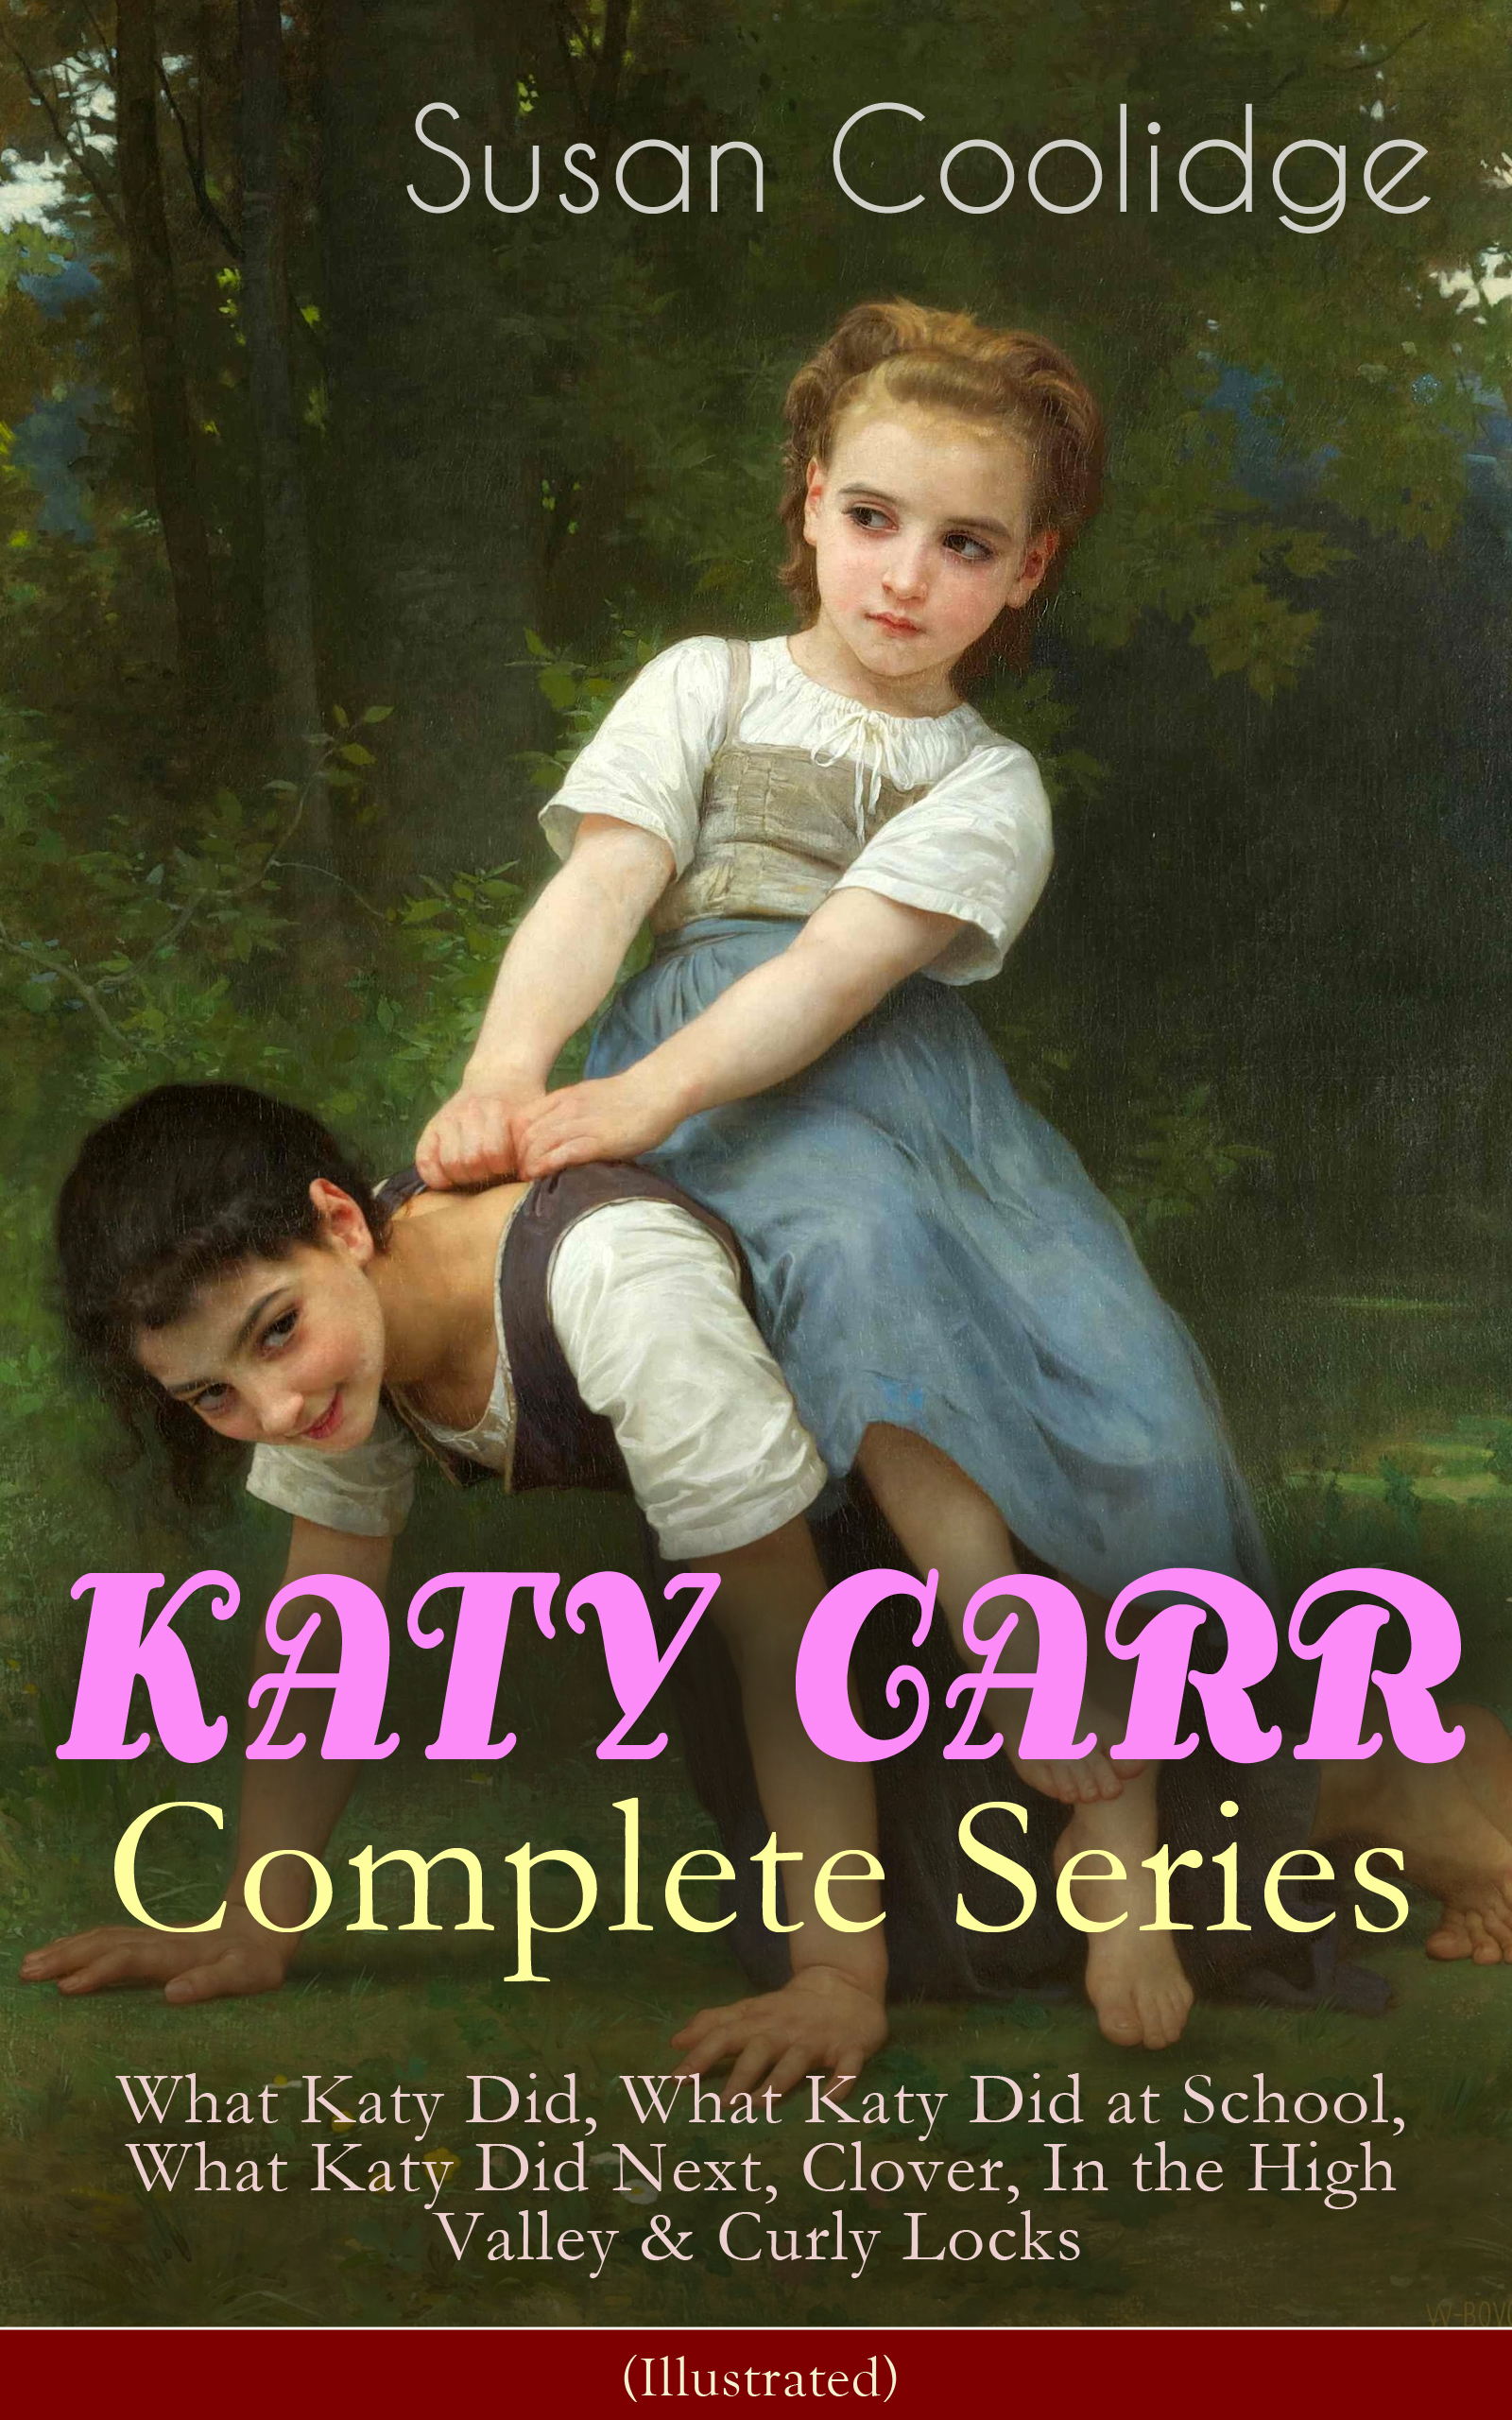 KATY CARR Complete Series: What Katy Did, What Katy Did at School, What Katy Did Next, Clover, In the High Valley & Curly Locks (Illustrated) фото